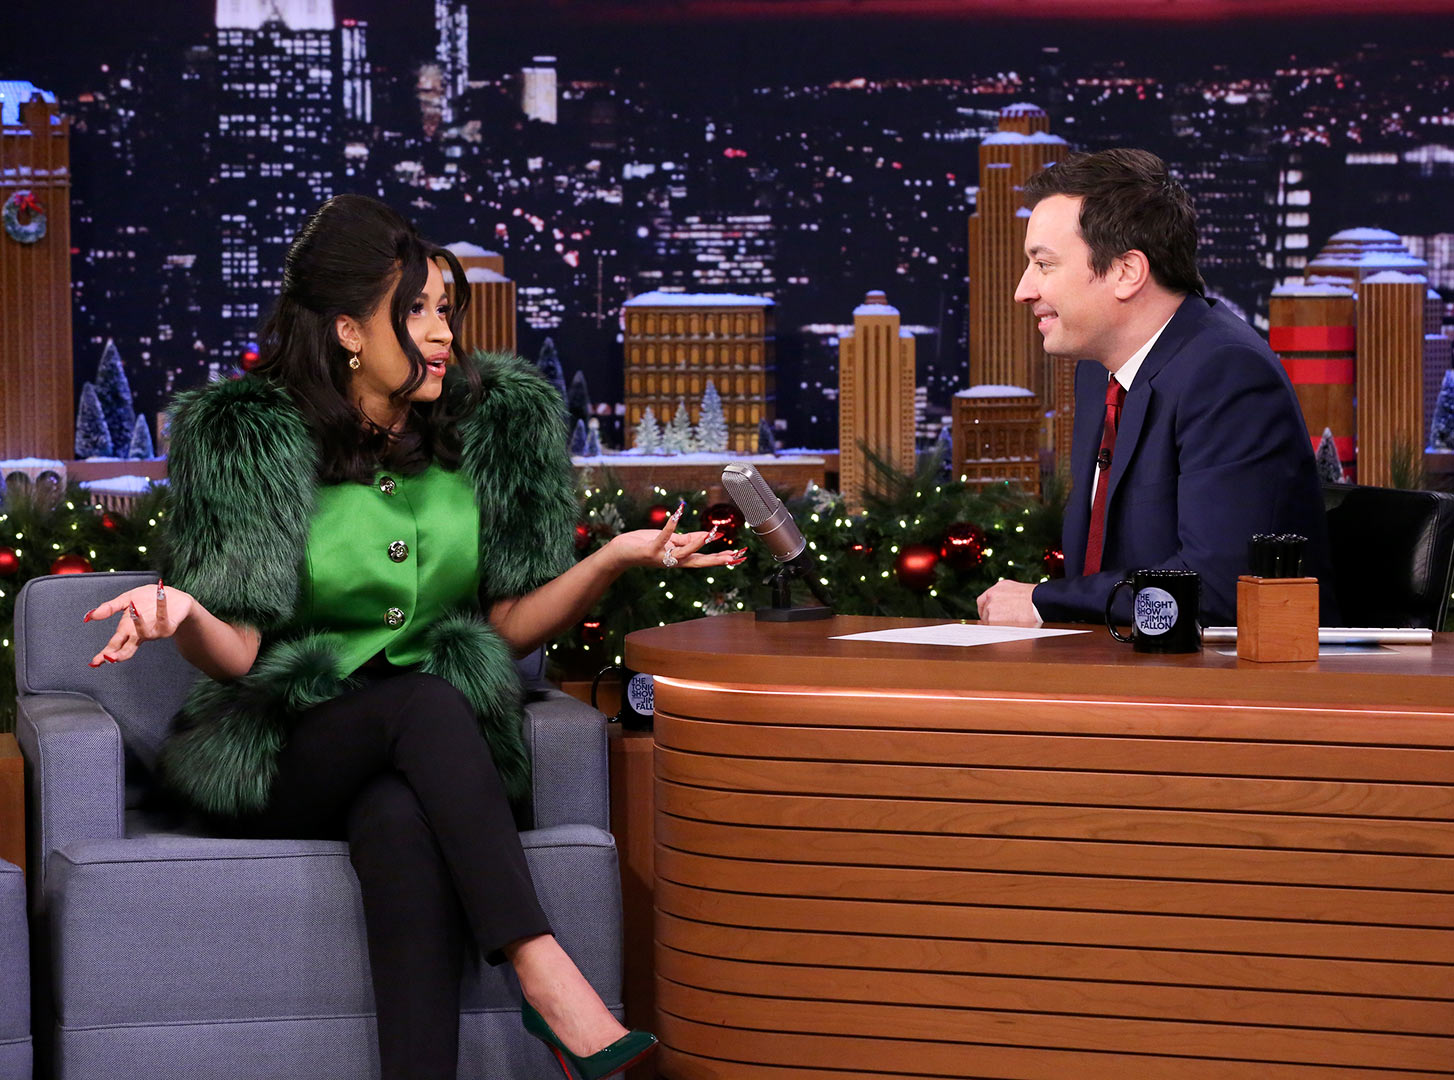 Cardi B Cracks Jimmy Fallon Up Explaining Her Name's Origin